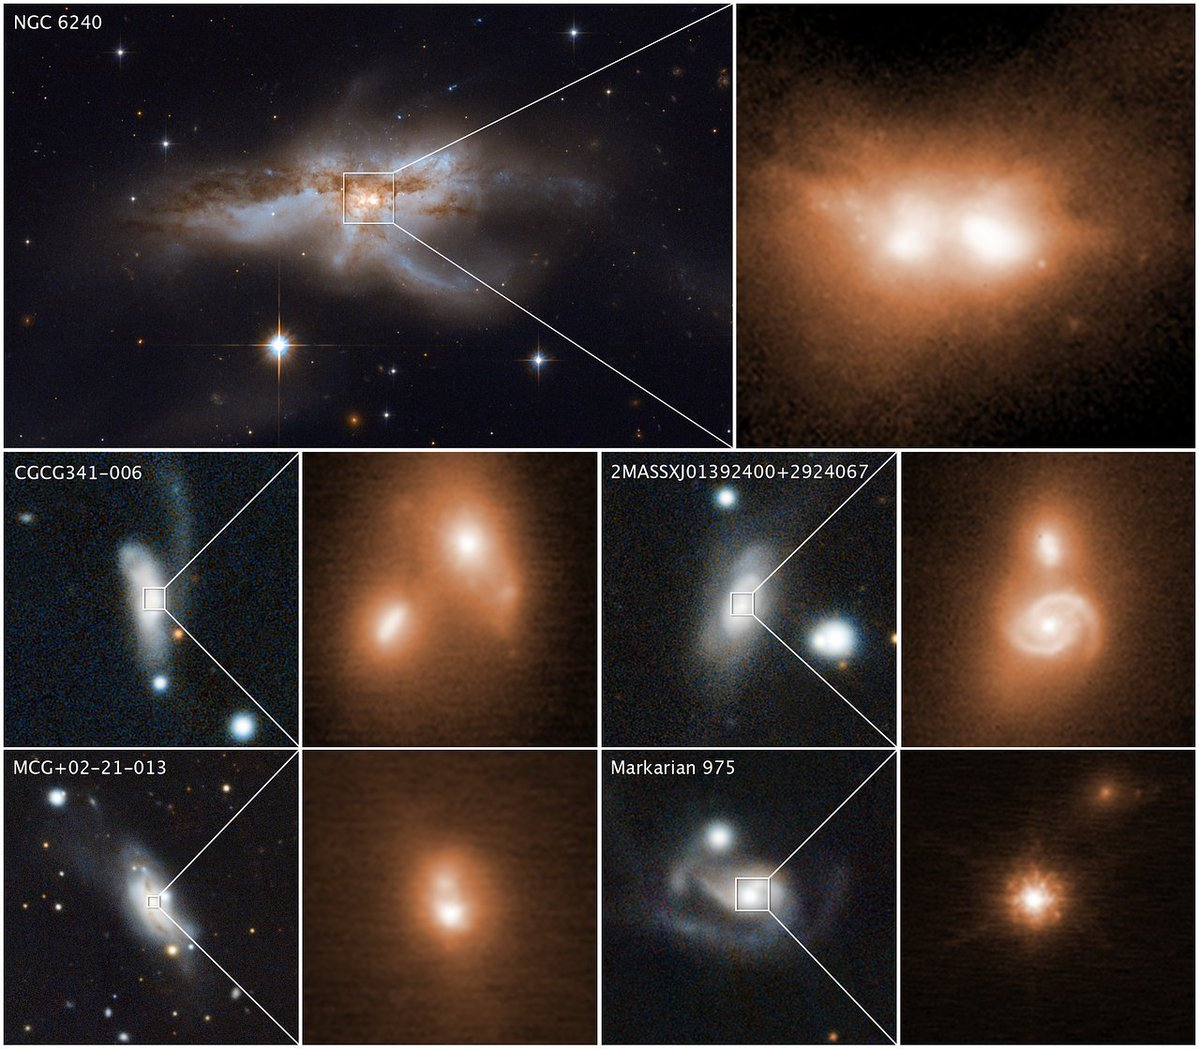 #Hubble and #Keck observatories uncover #blackholes coalescing. These images reveal the final stage of a union between pairs of galactic nuclei in the messy cores of colliding galaxies.  https://t.co/KX9U23Rp9g